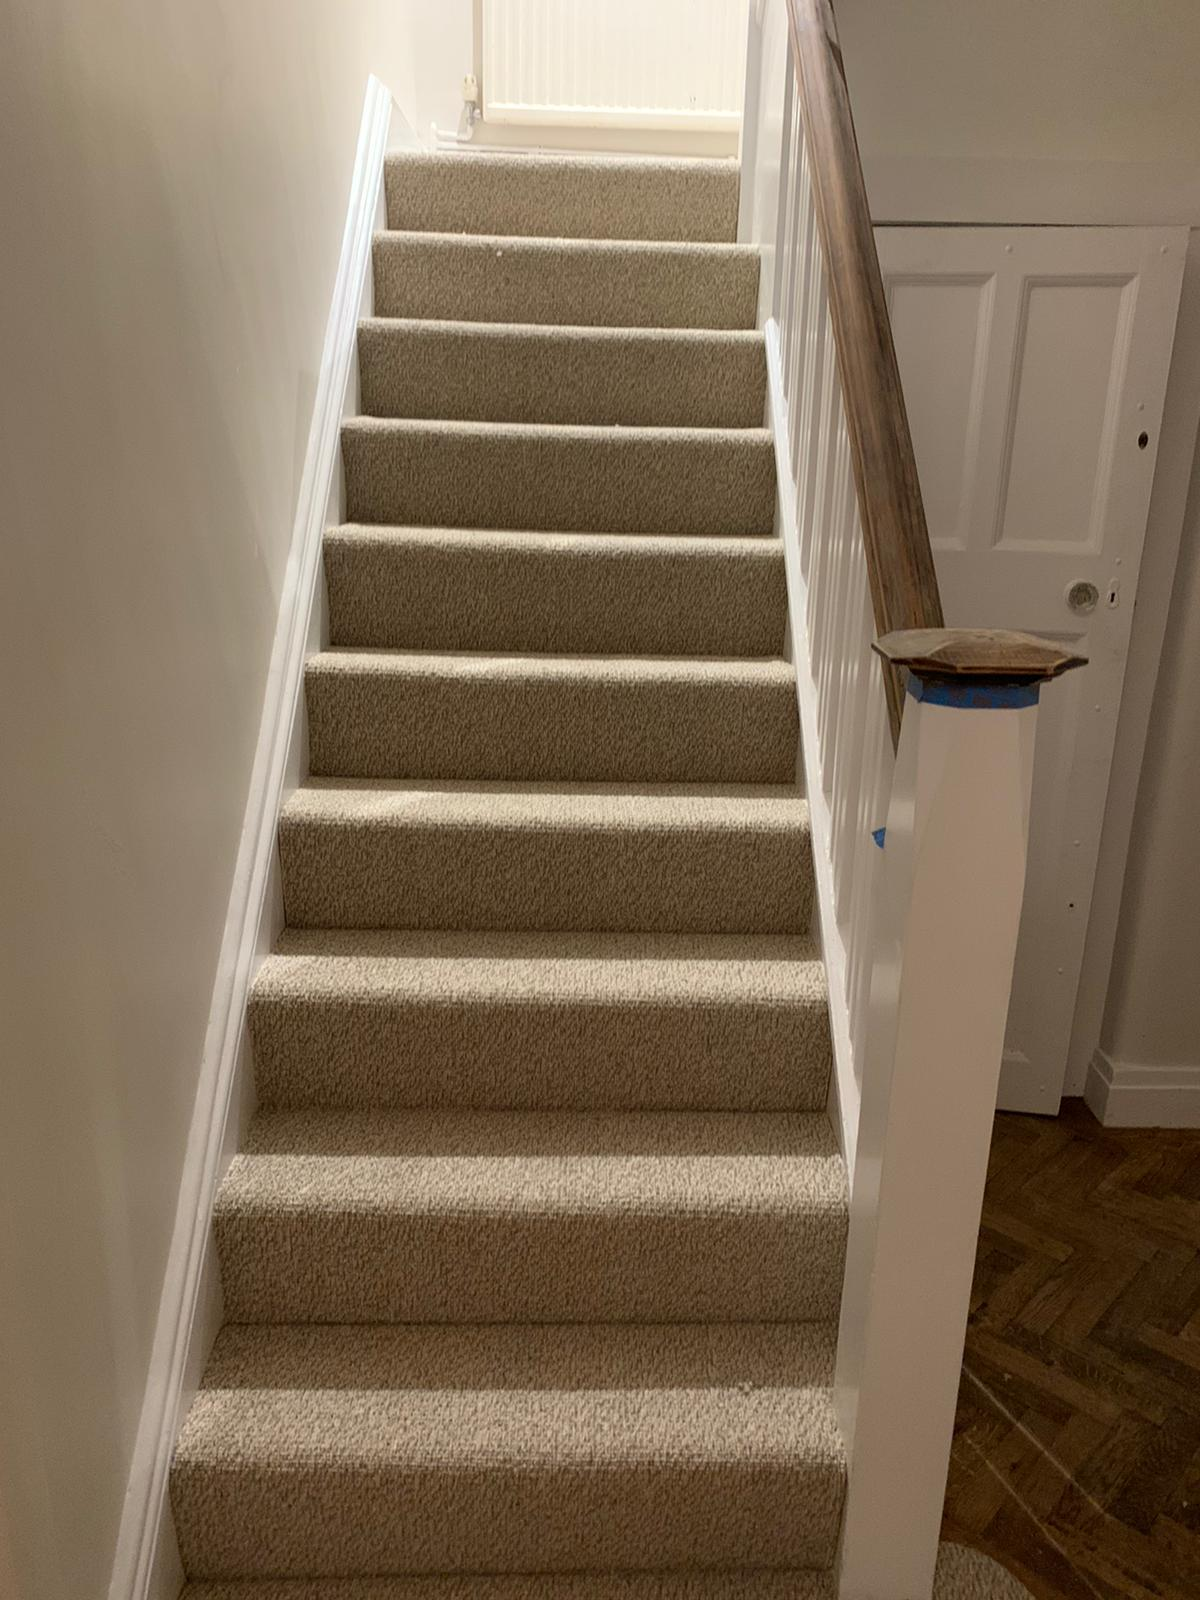 To supply & install light carpet to premises in Acton 1